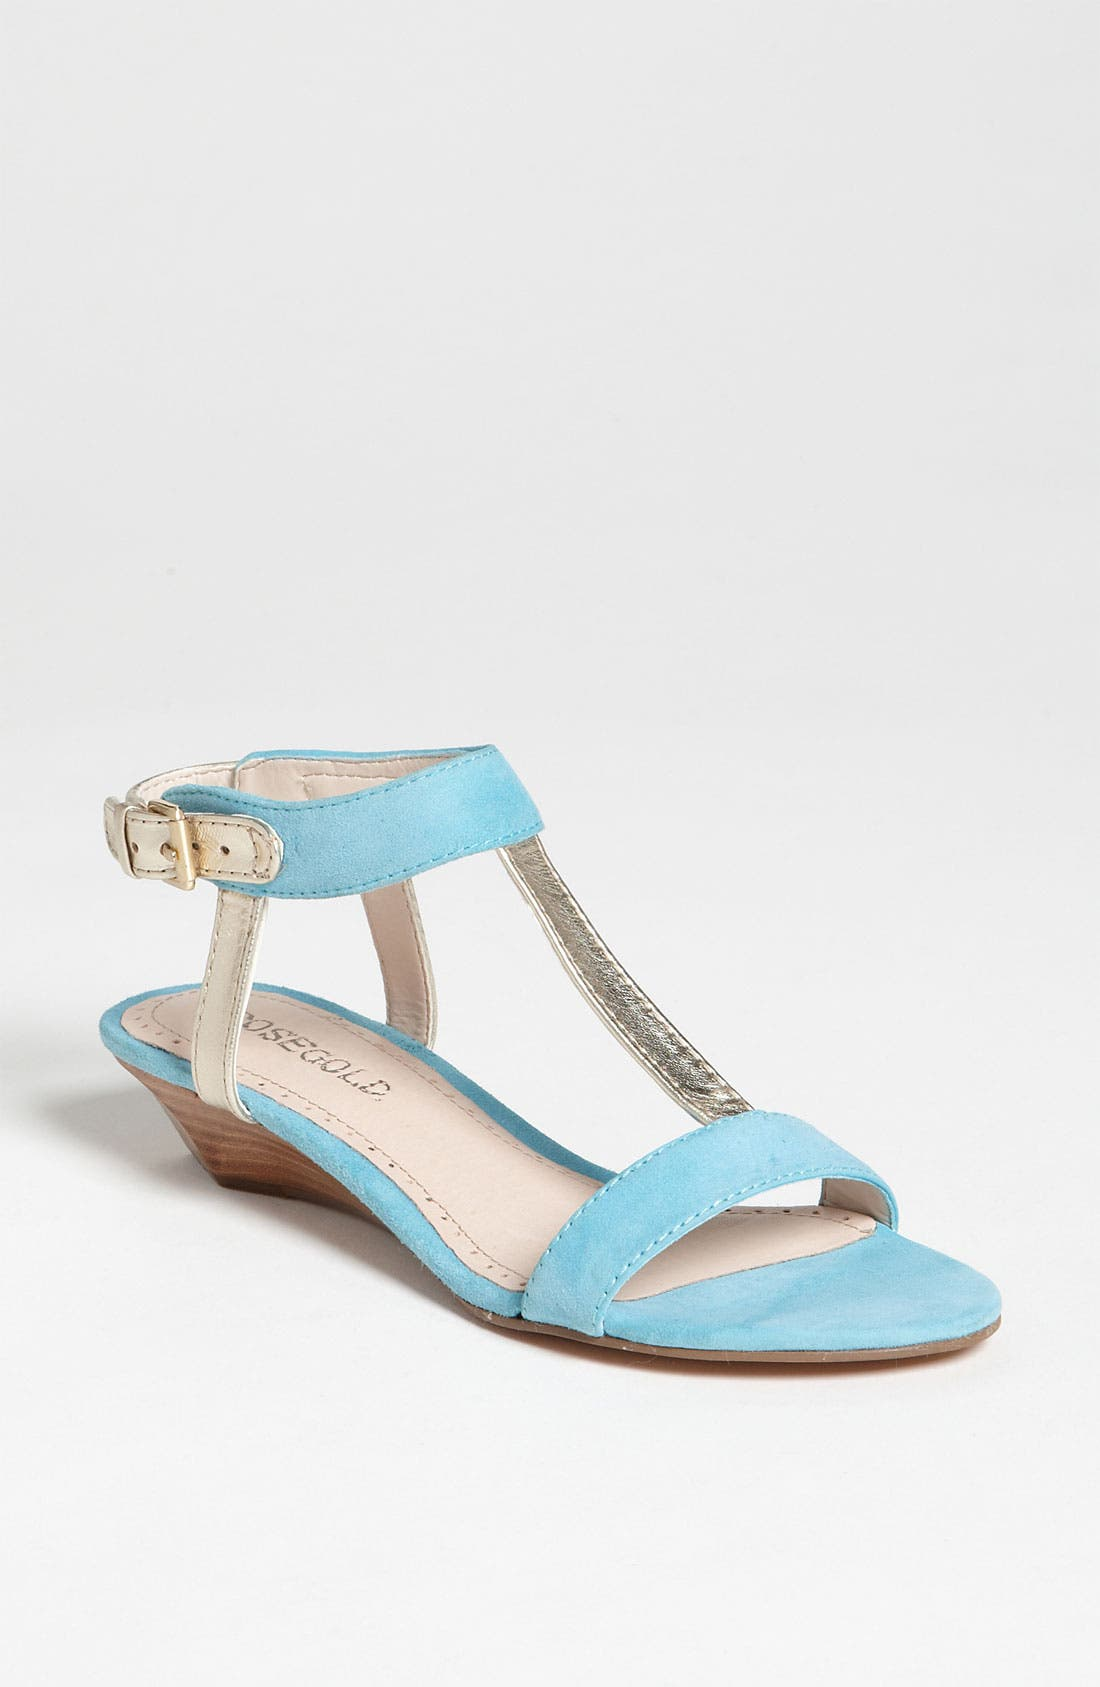 Alternate Image 1 Selected - Rosegold 'Lulu' Sandal